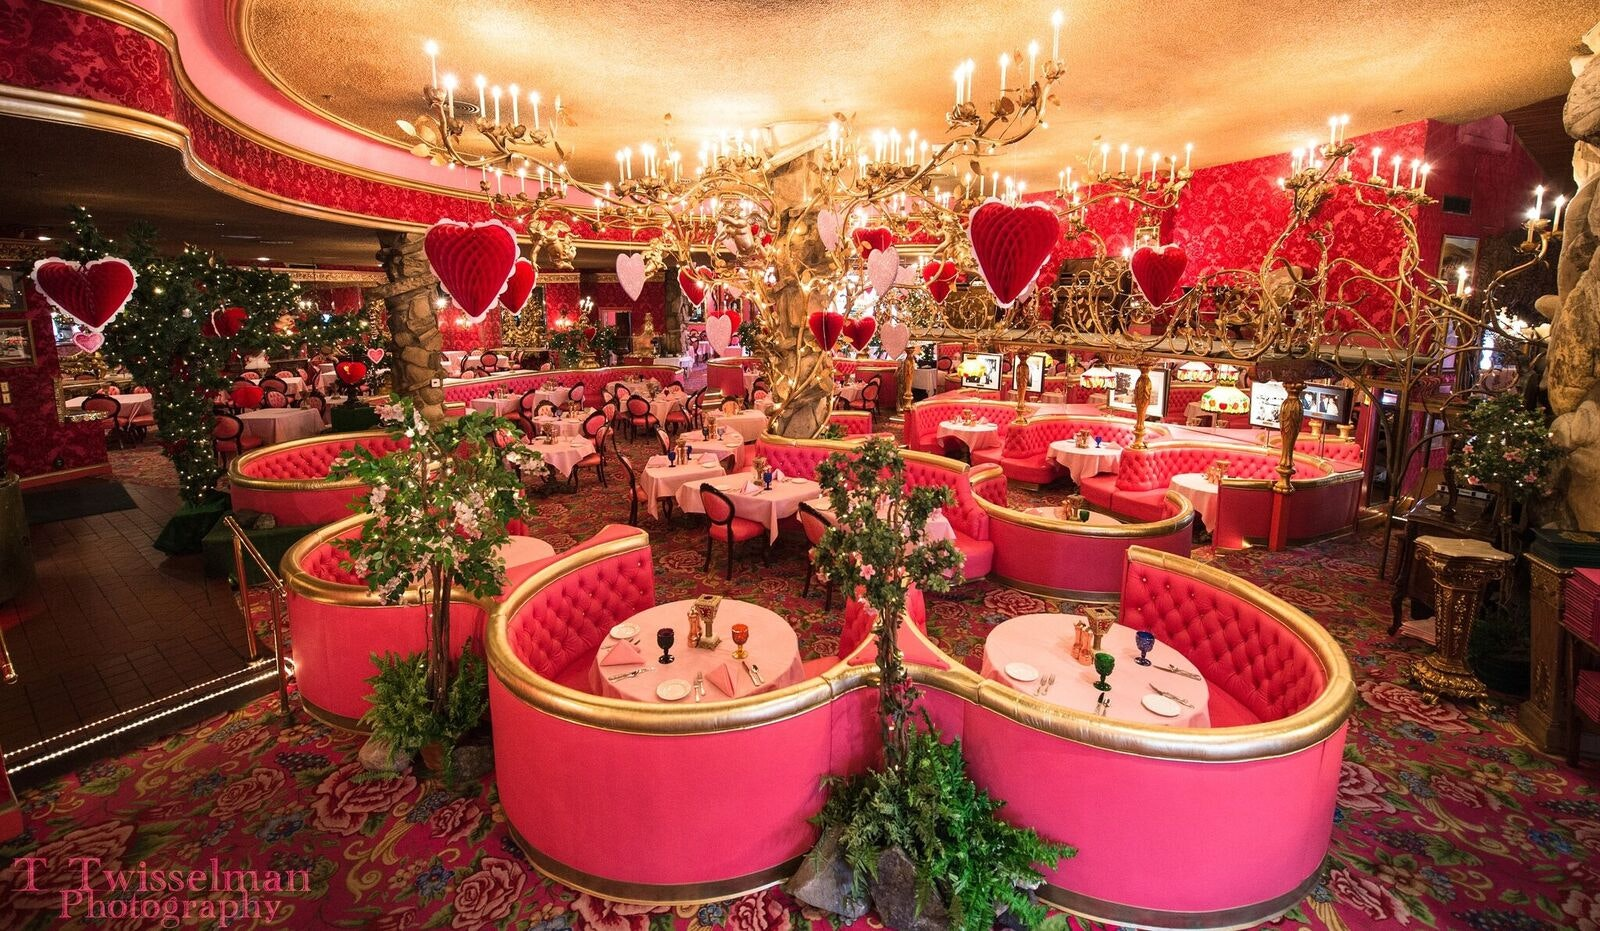 The interior of the Madonna Inn